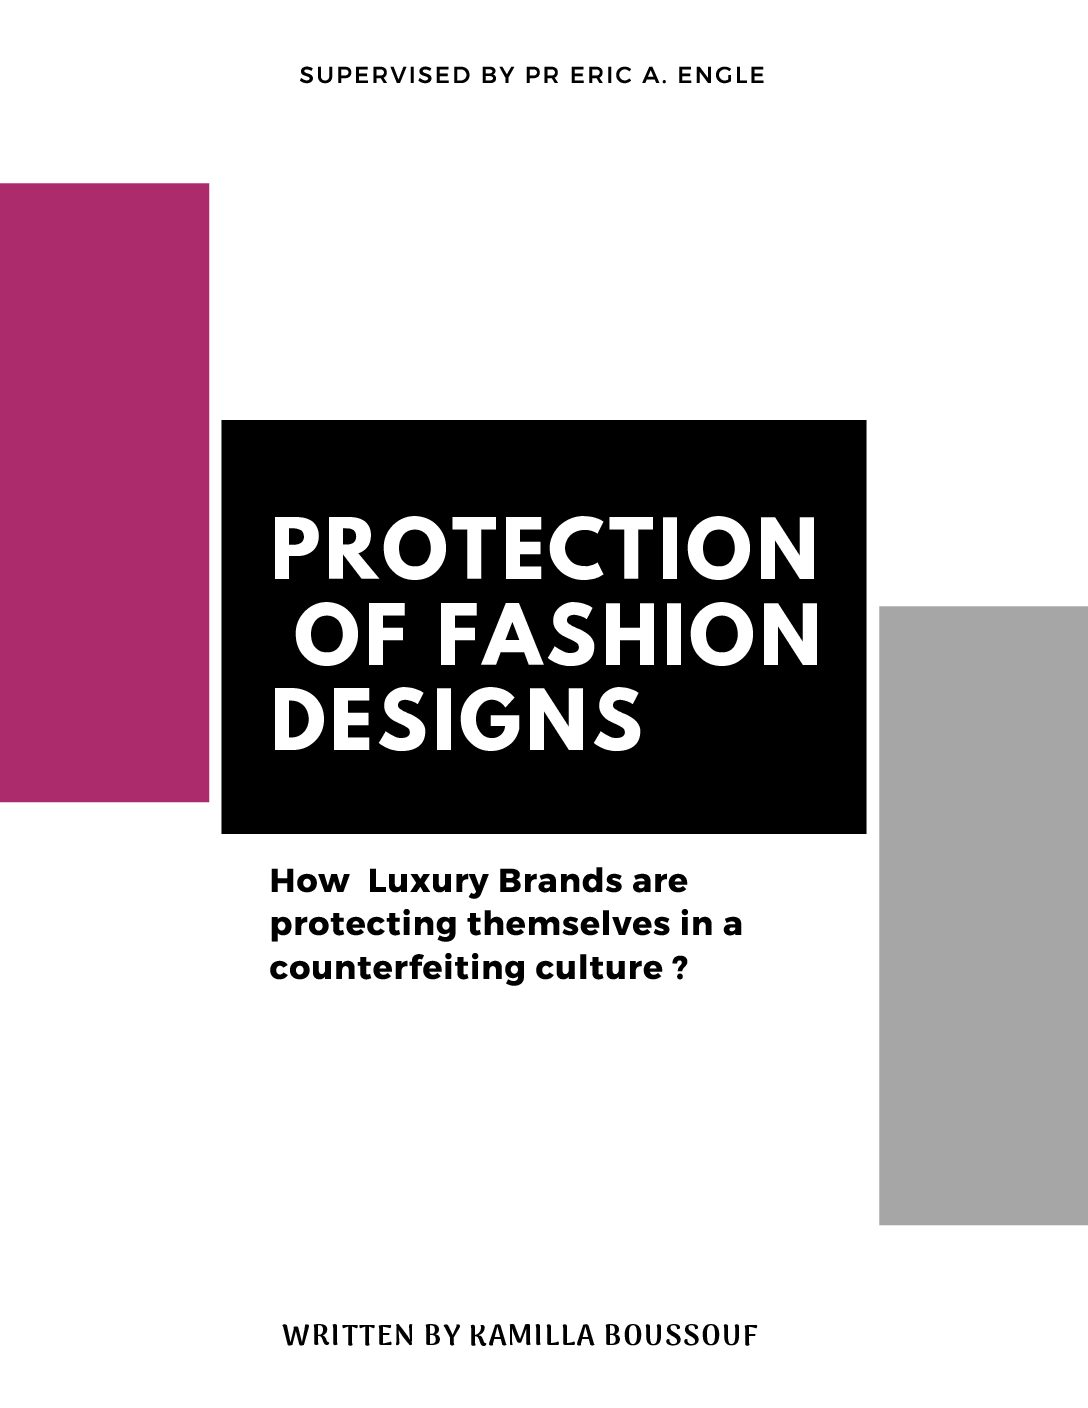 Protection of Fashion Designs – How luxury brands are protecting themselves in a counterfeiting culture ?